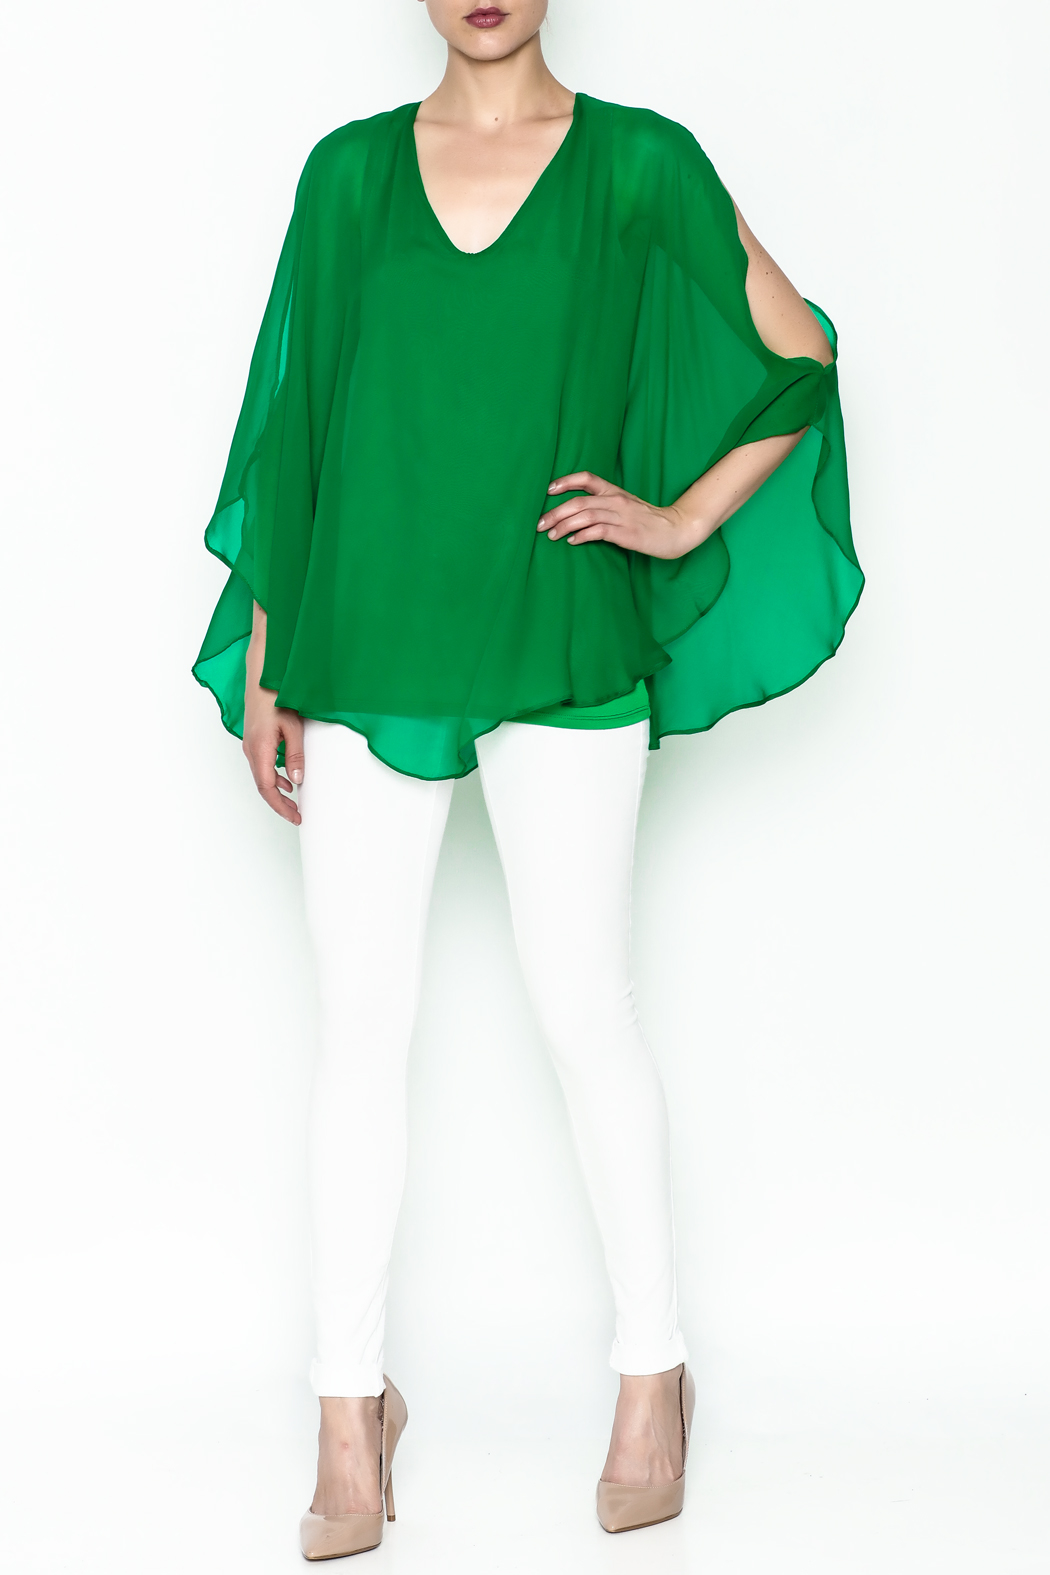 Julian Chang Sheer Overlay Blouse - Side Cropped Image